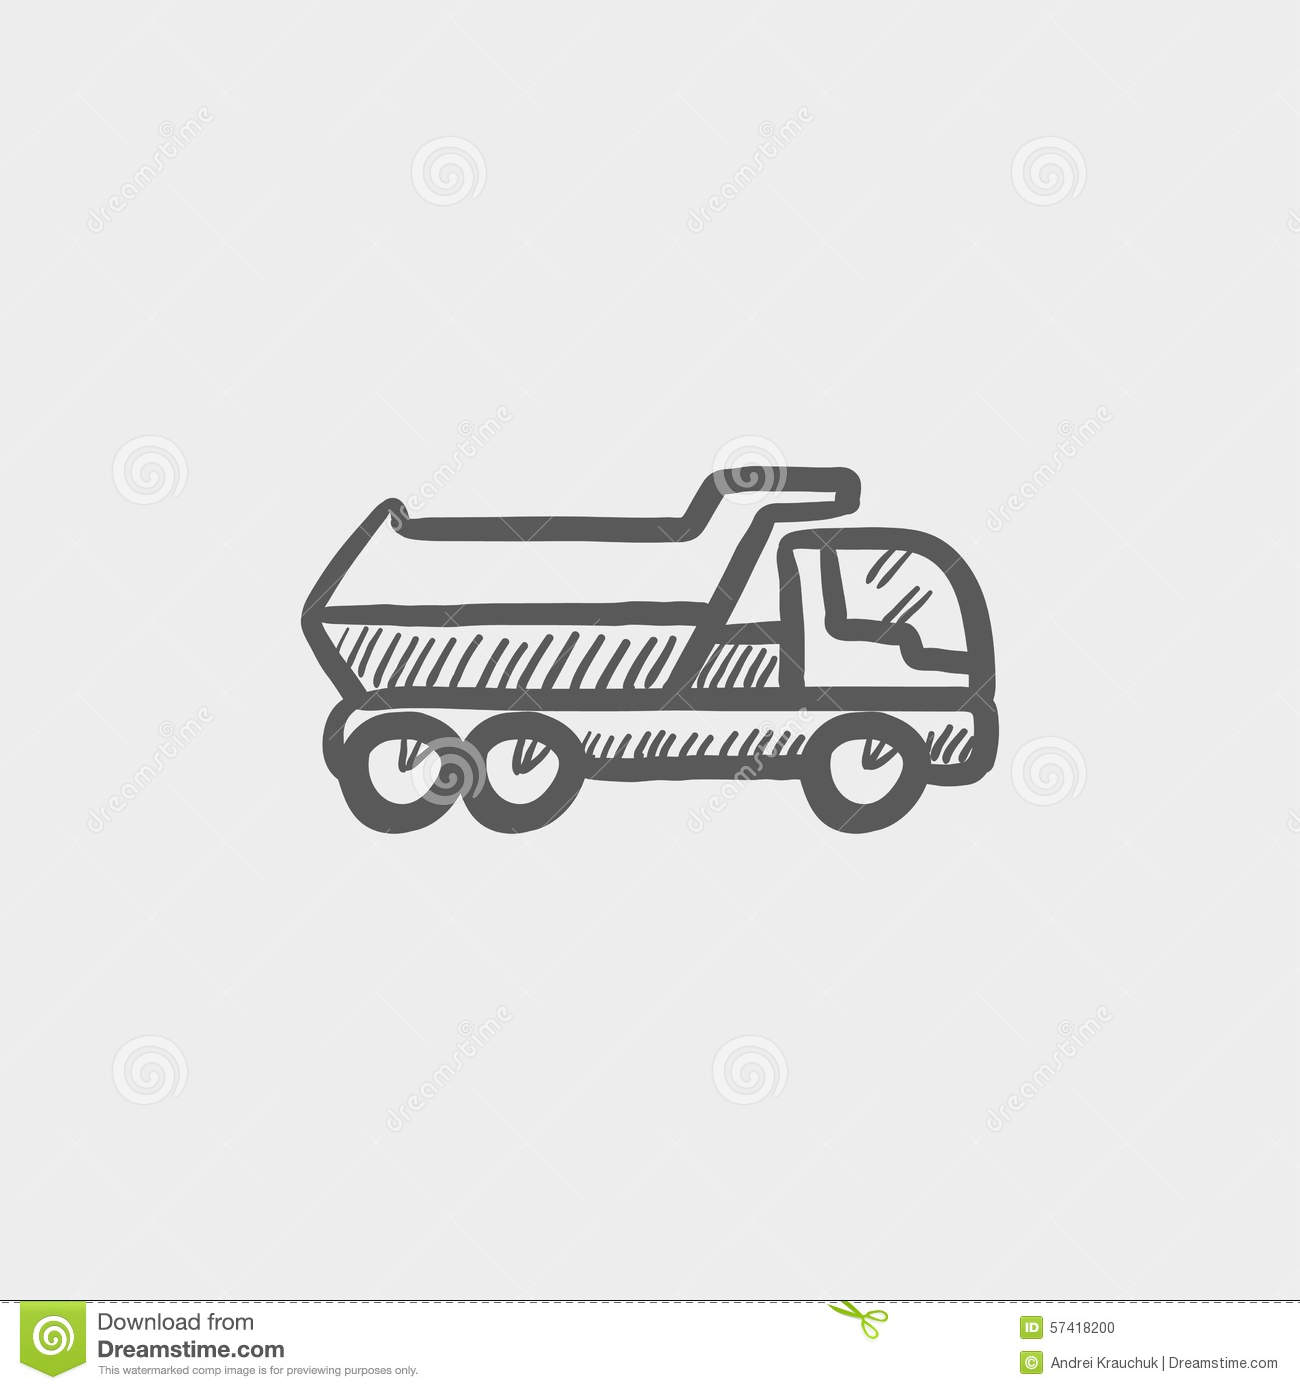 Fuel Supply Truck